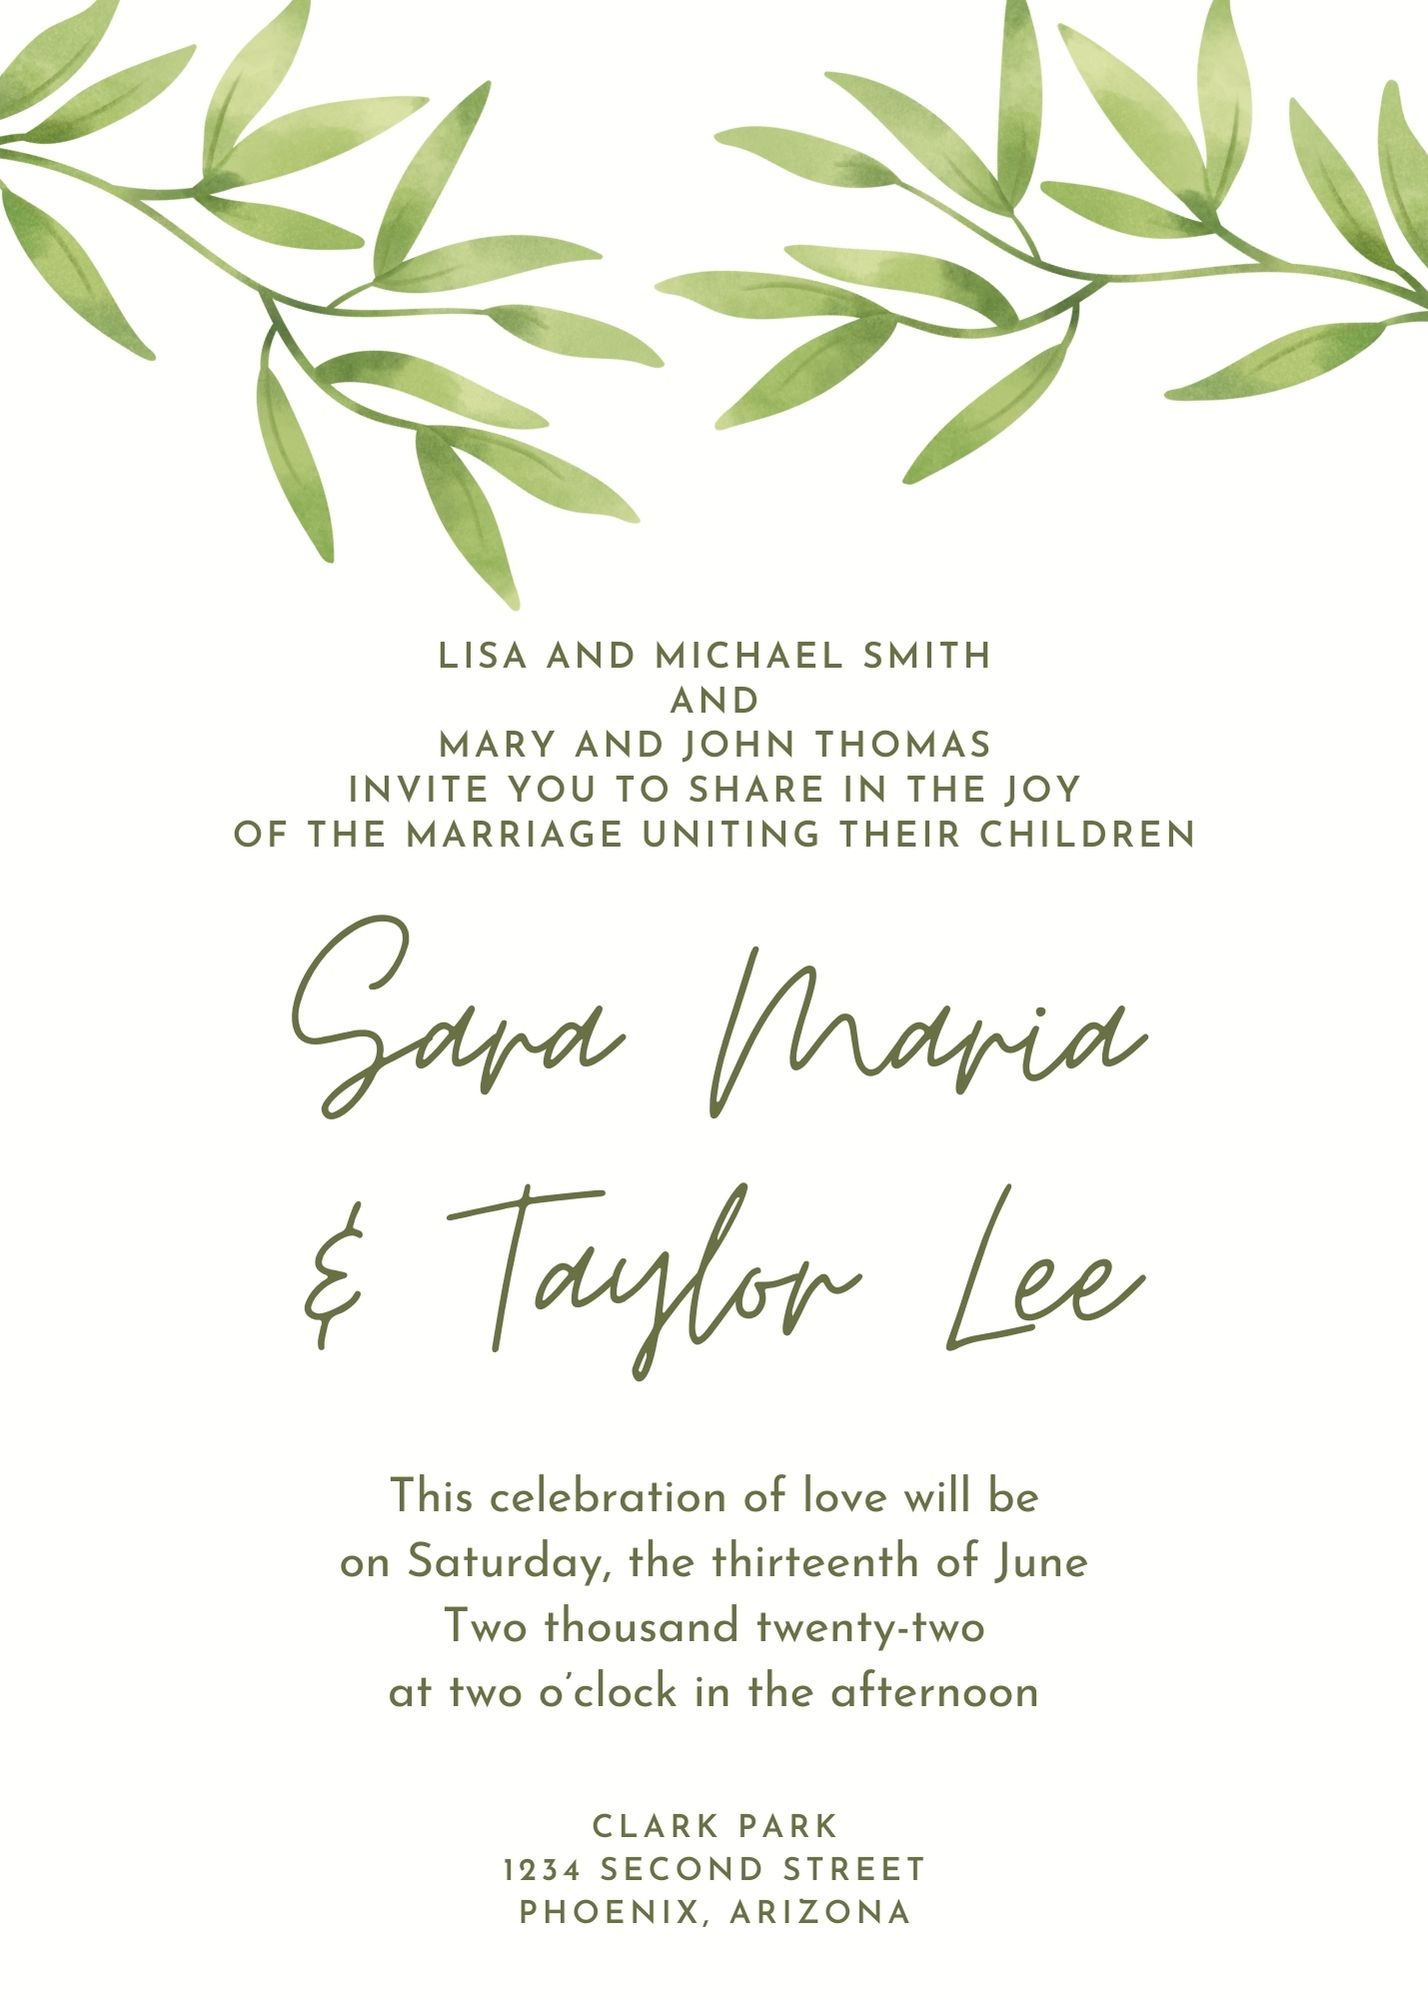 wedding invitation for wedding hosted by both sets of parents